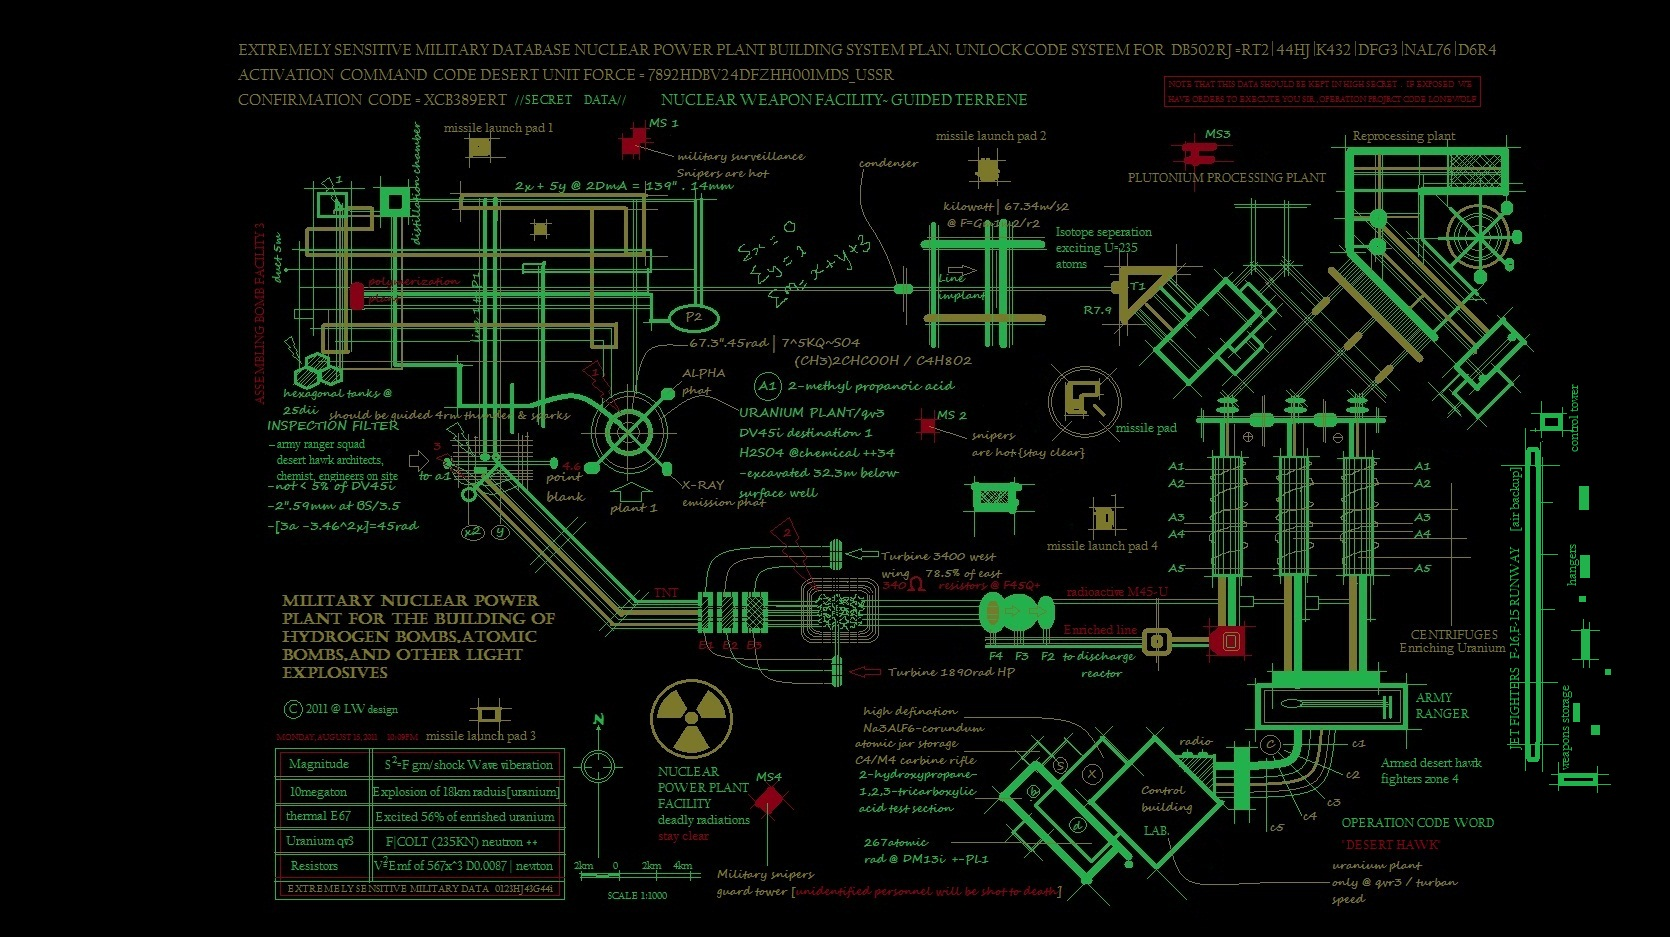 Nuclear Plant Wallpaper And Background Image 1670x937 Id 174207 Rh Wall  Alphacoders Com Iron Man Schematics Wallpaper Car Schematic Wallpaper